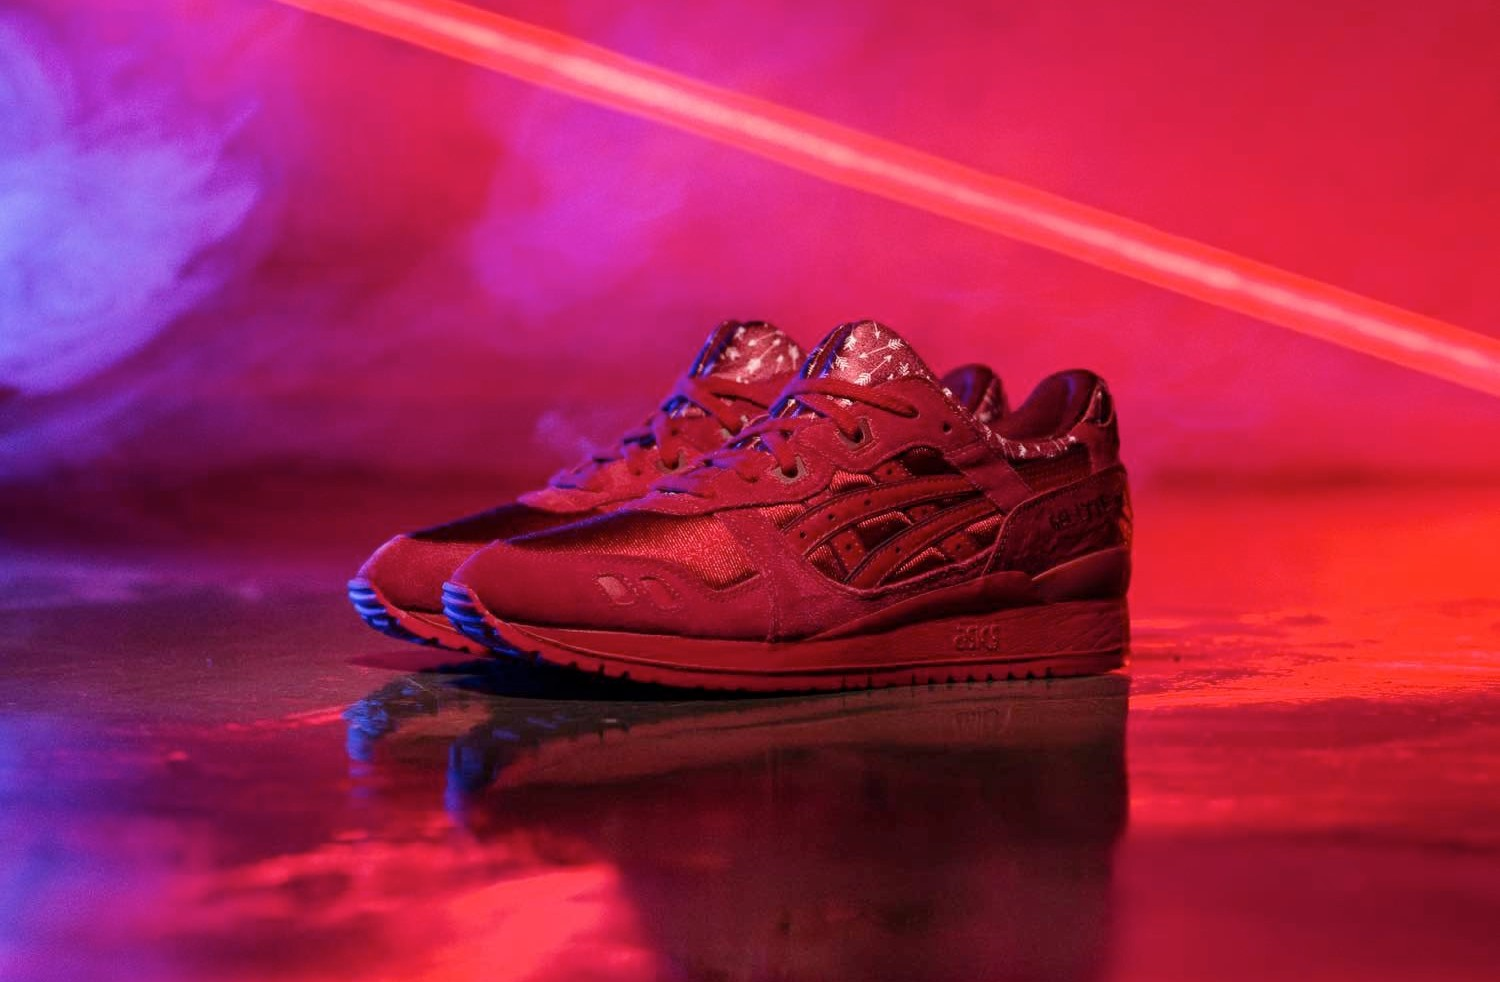 Asics Gel Lyte III Valentine's Day Pack H63QQ-2323 Red